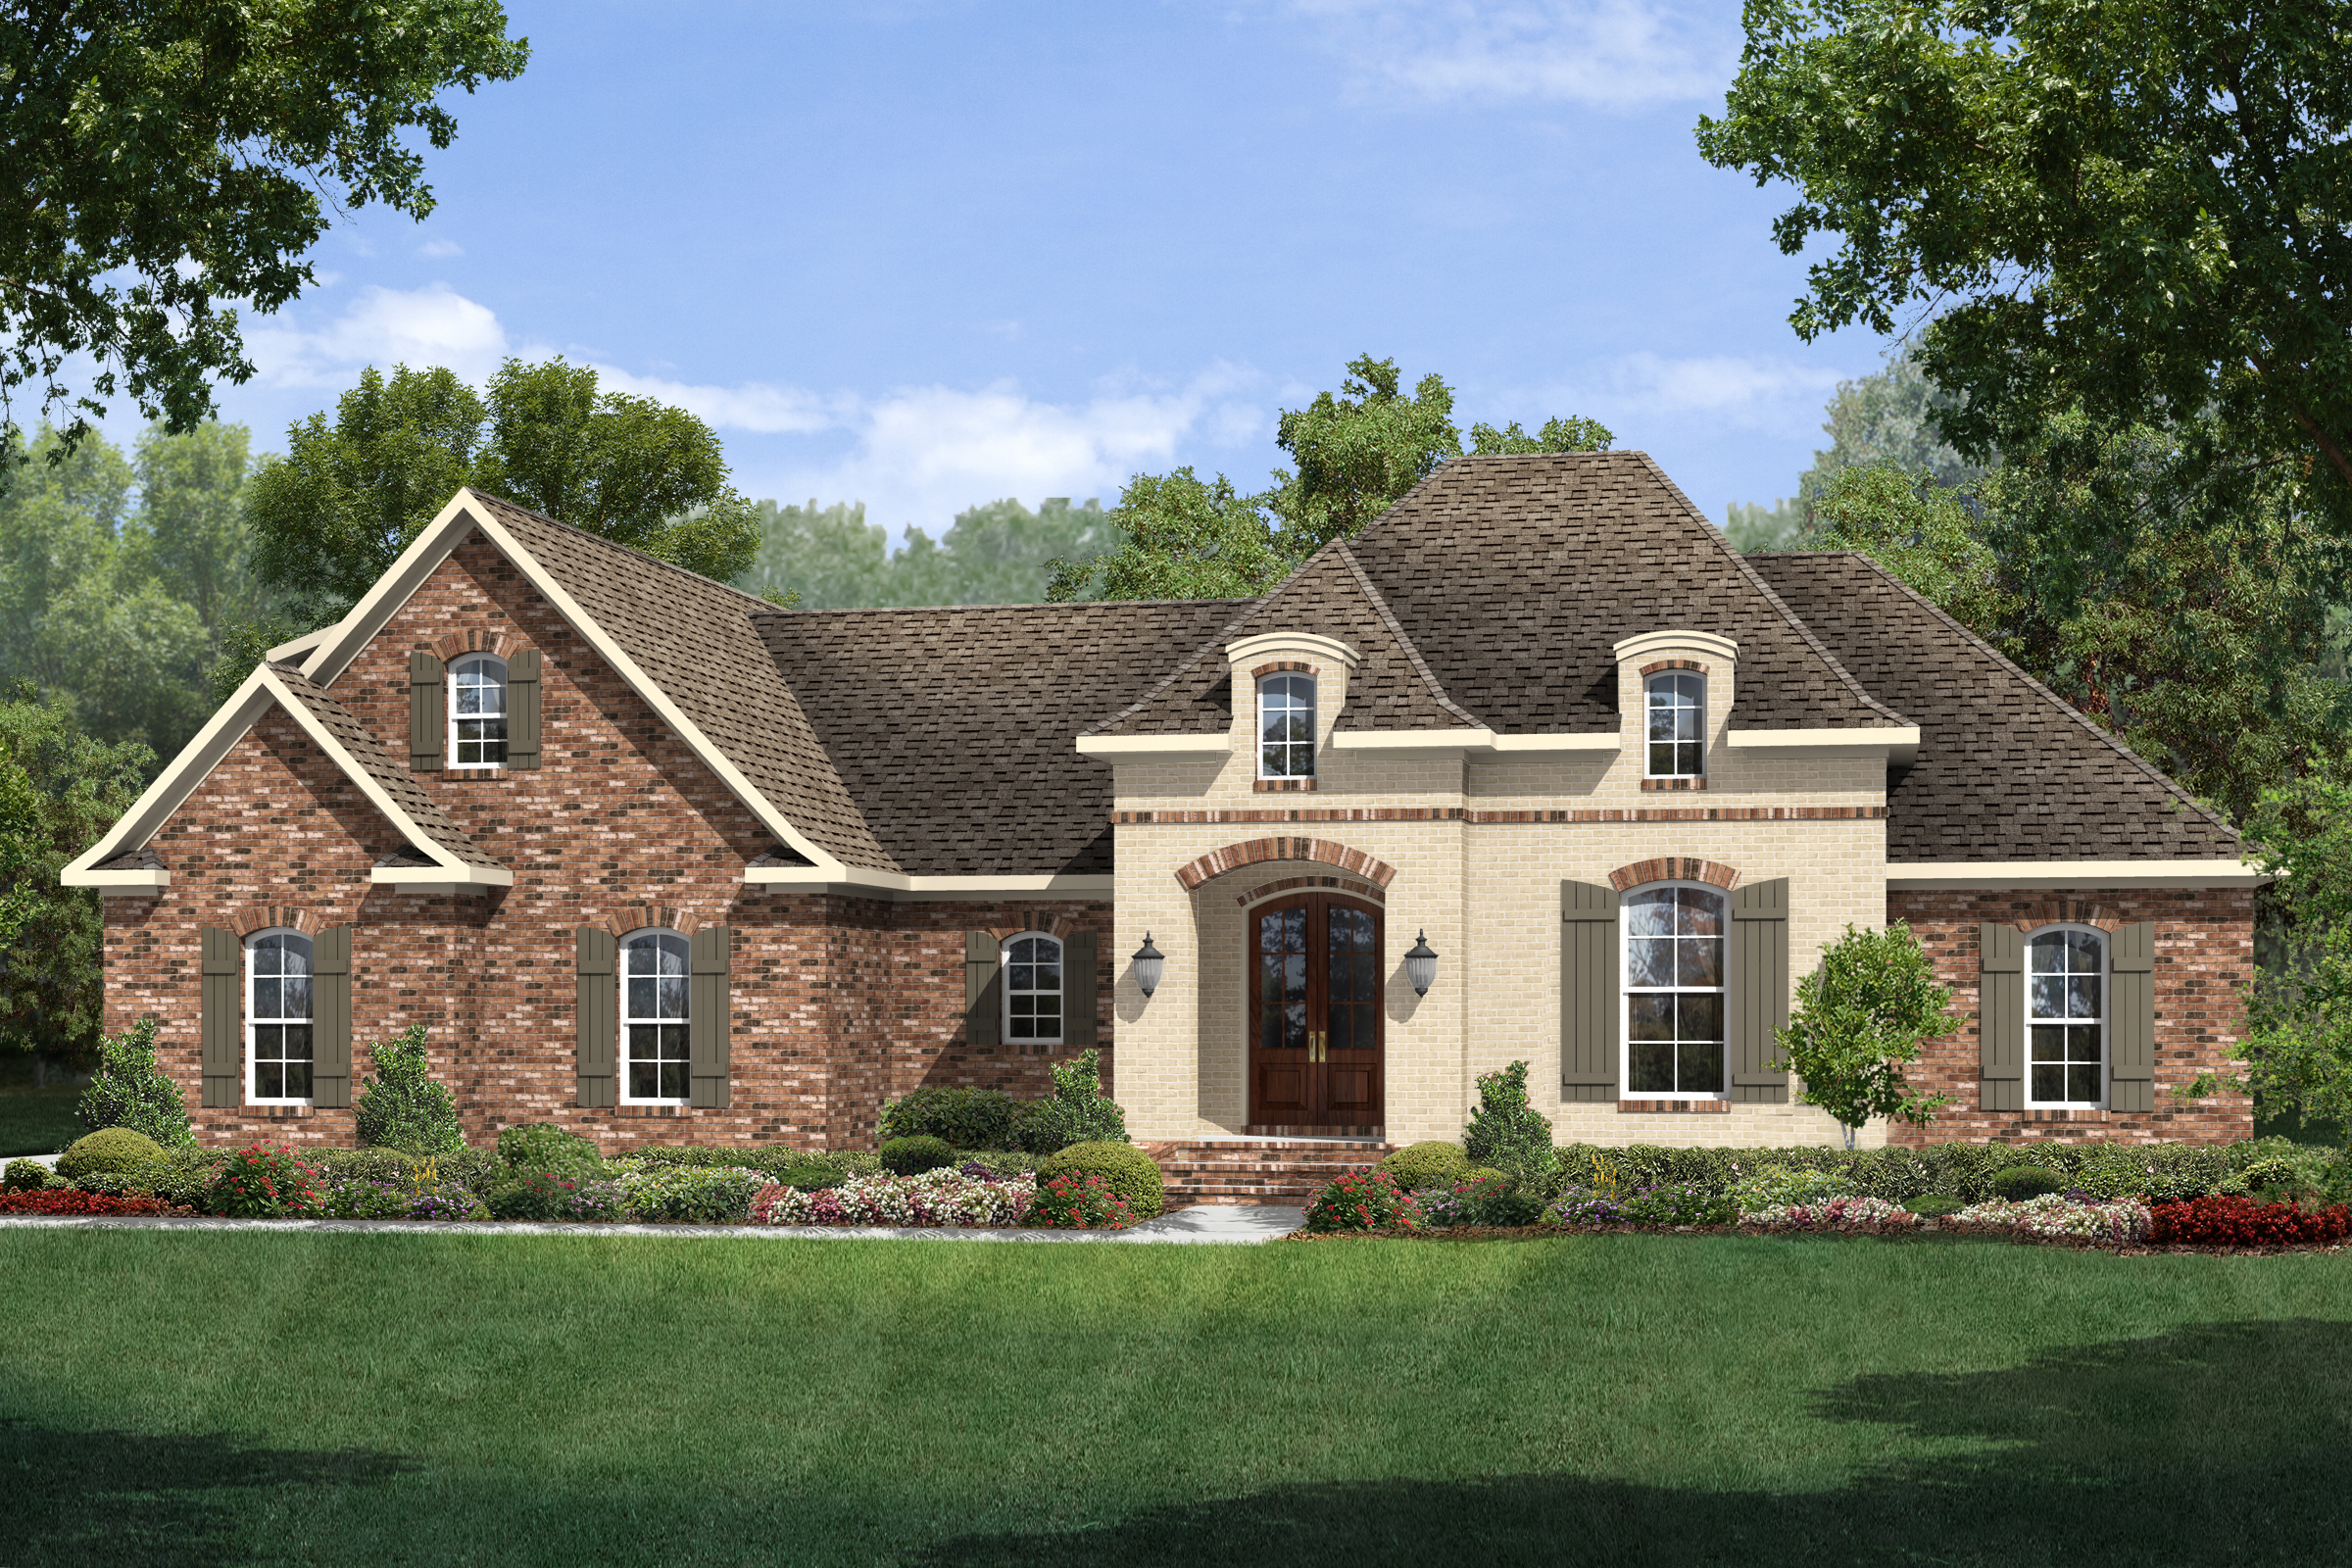 Country House Plan 142 1126 3 Bedrm 1953 Sq Ft Home Theplancollection